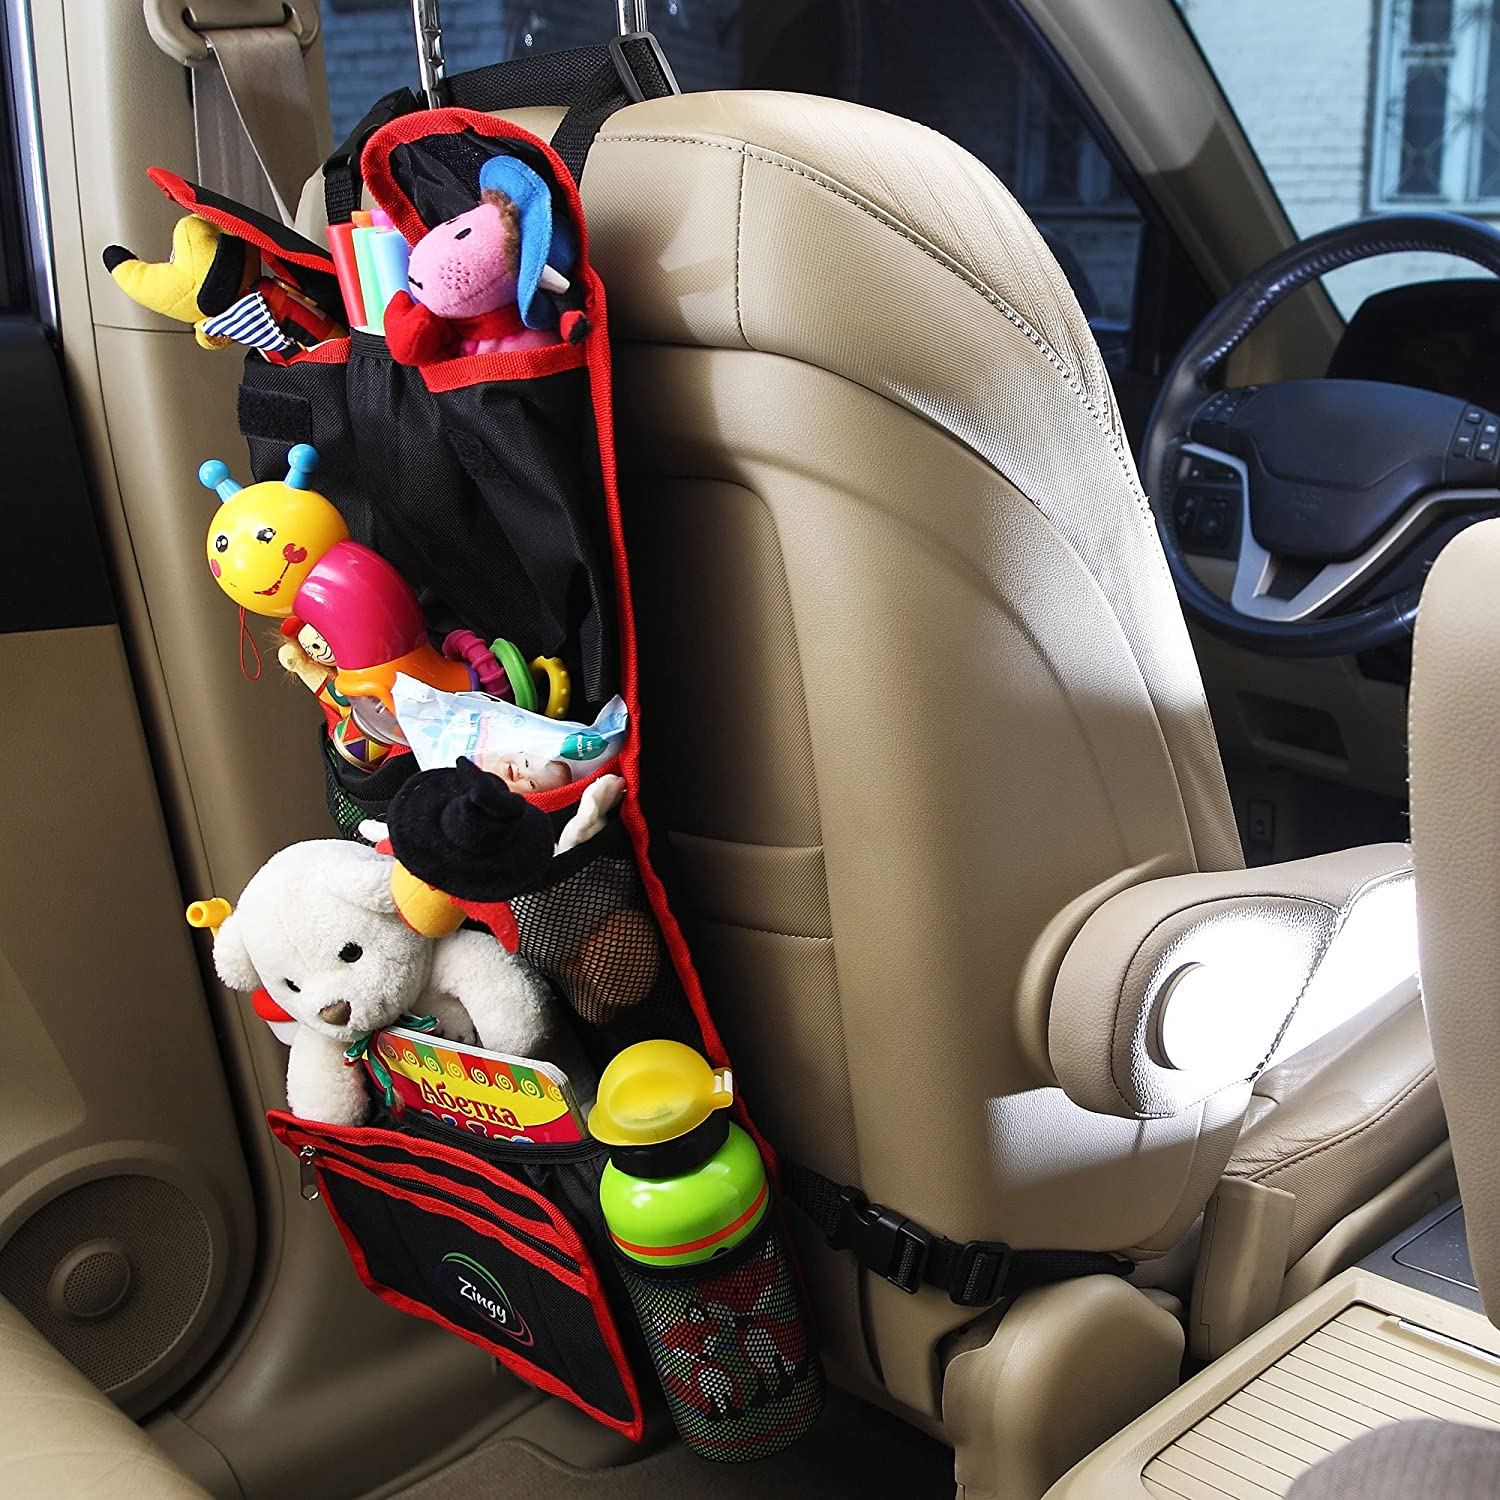 Amazon backseat organizer for kids 3 in 1 car organizer with amazon backseat organizer for kids 3 in 1 car organizer with hooks for hanging under the seat headrest and tablet case 97 black and red or blue thecheapjerseys Images